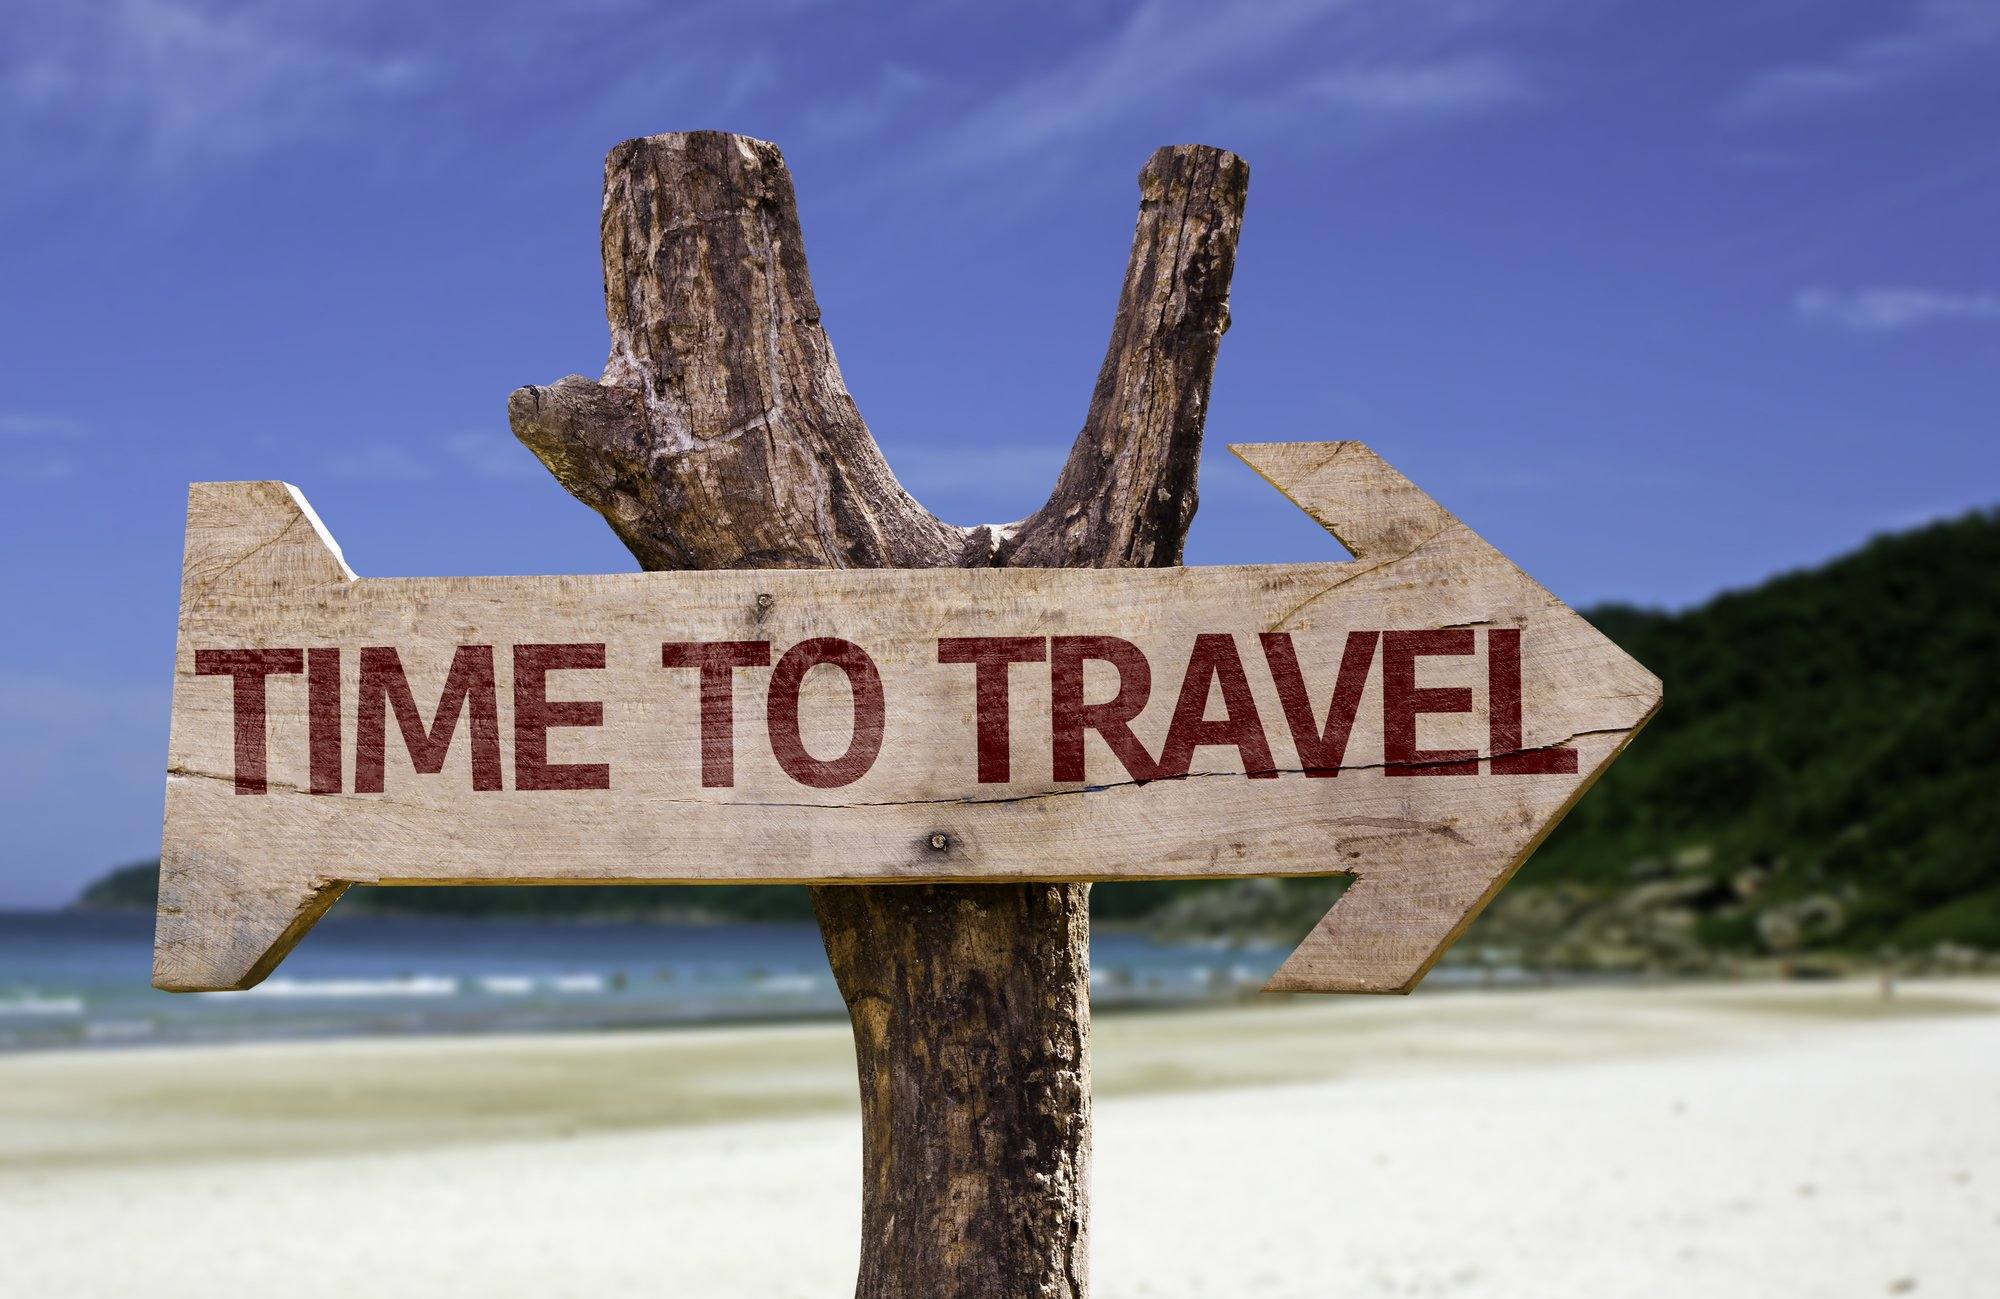 Time to travel with your local reliable taxi service - 1st Call Taxis